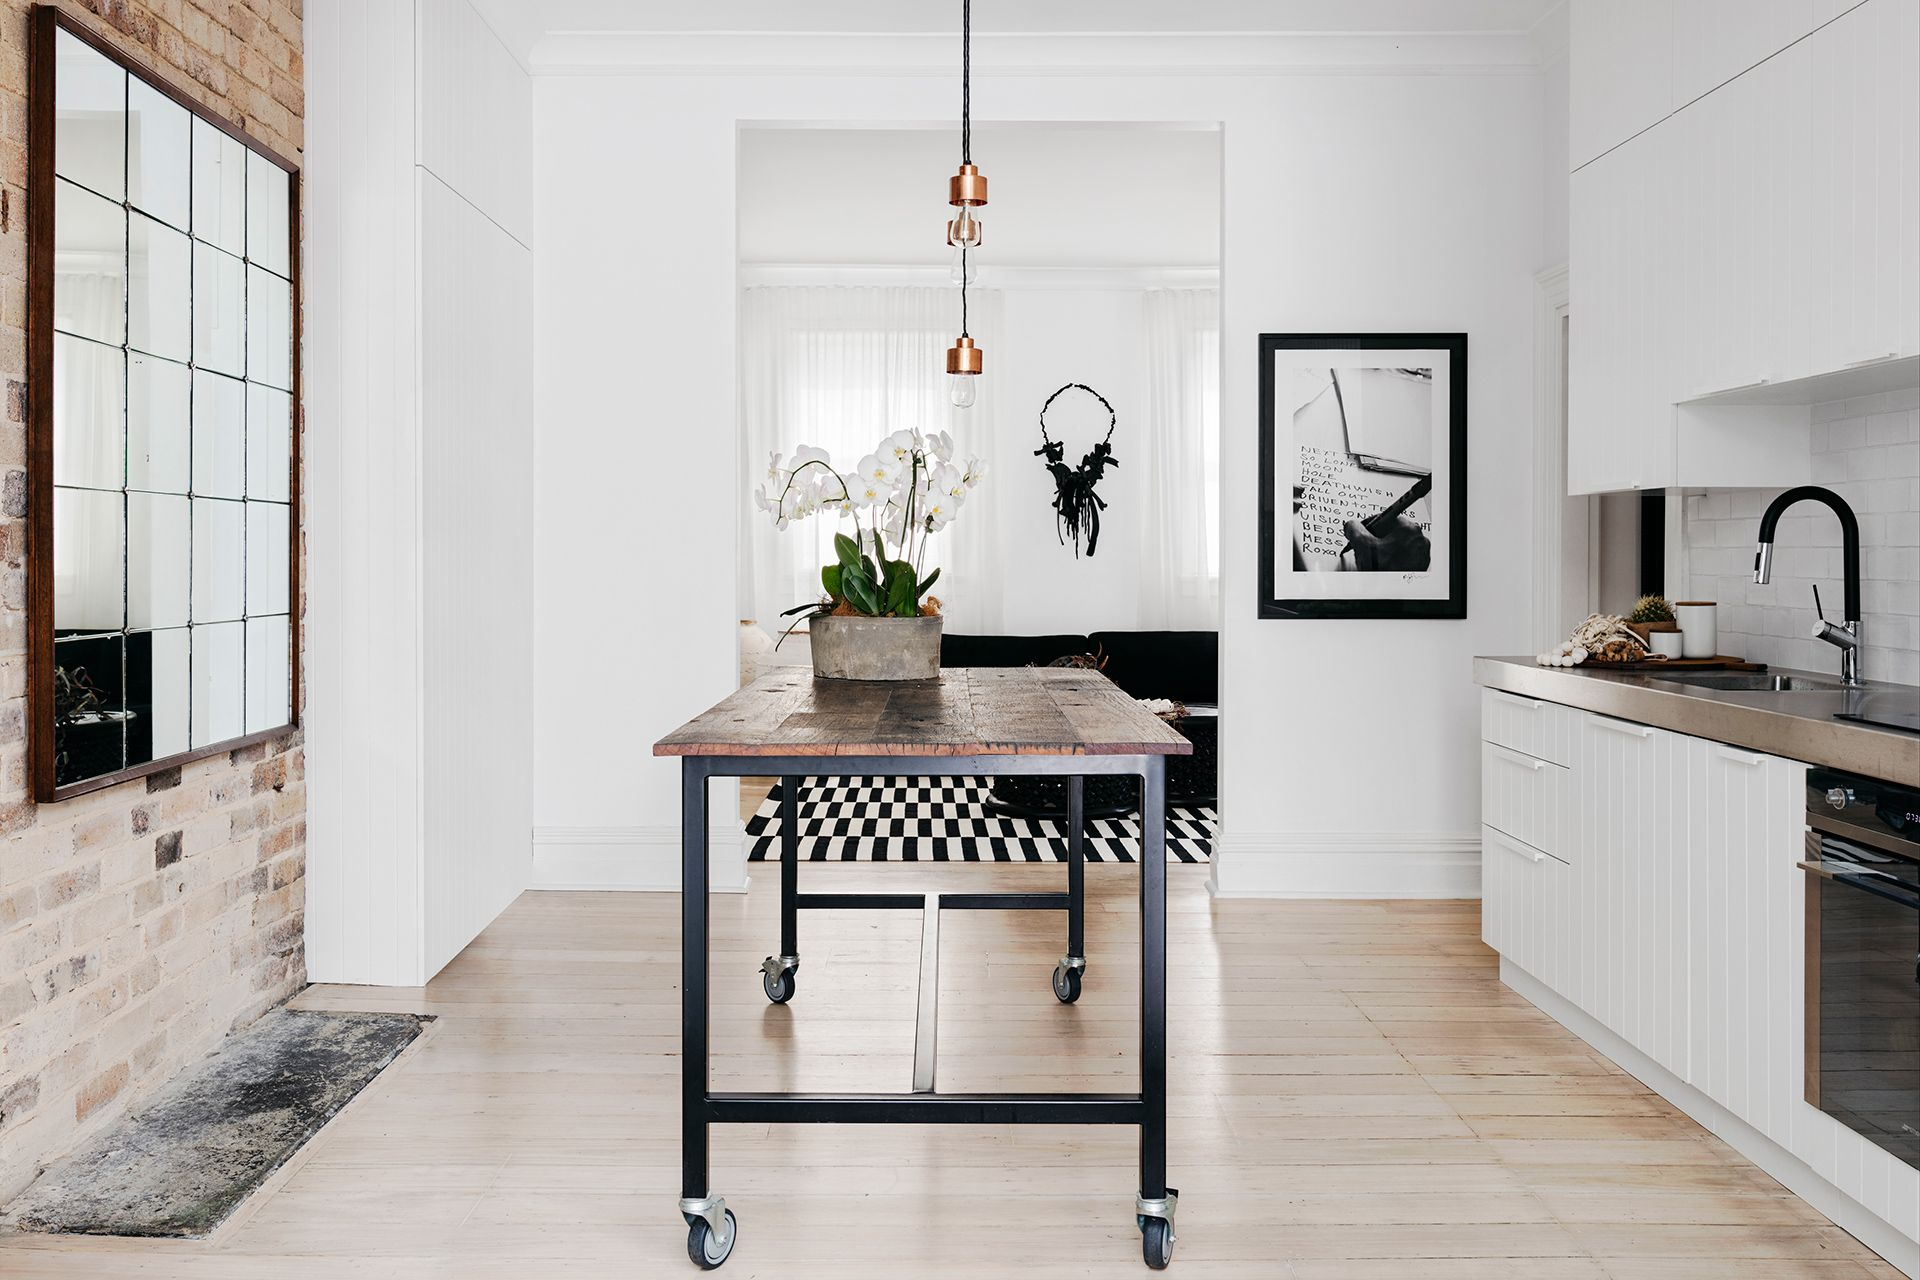 Terrace House Kitchen Design Ideas Awesome Monochrome Makeover Of Sydney Terrace Kitchens Home 3085 2